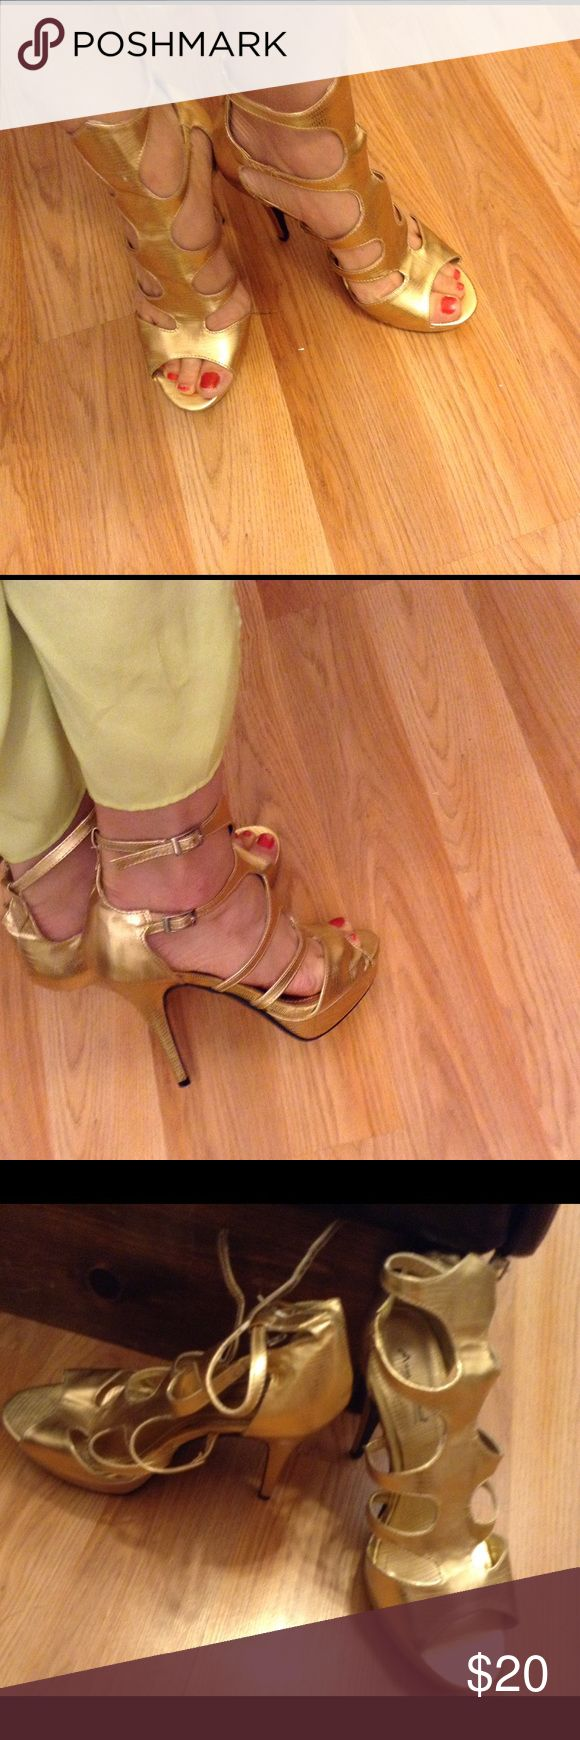 Anna Michelle gold strapped heels 9 Anna Michele gold strapped heels 9 . New Anne Michelle Shoes Heels